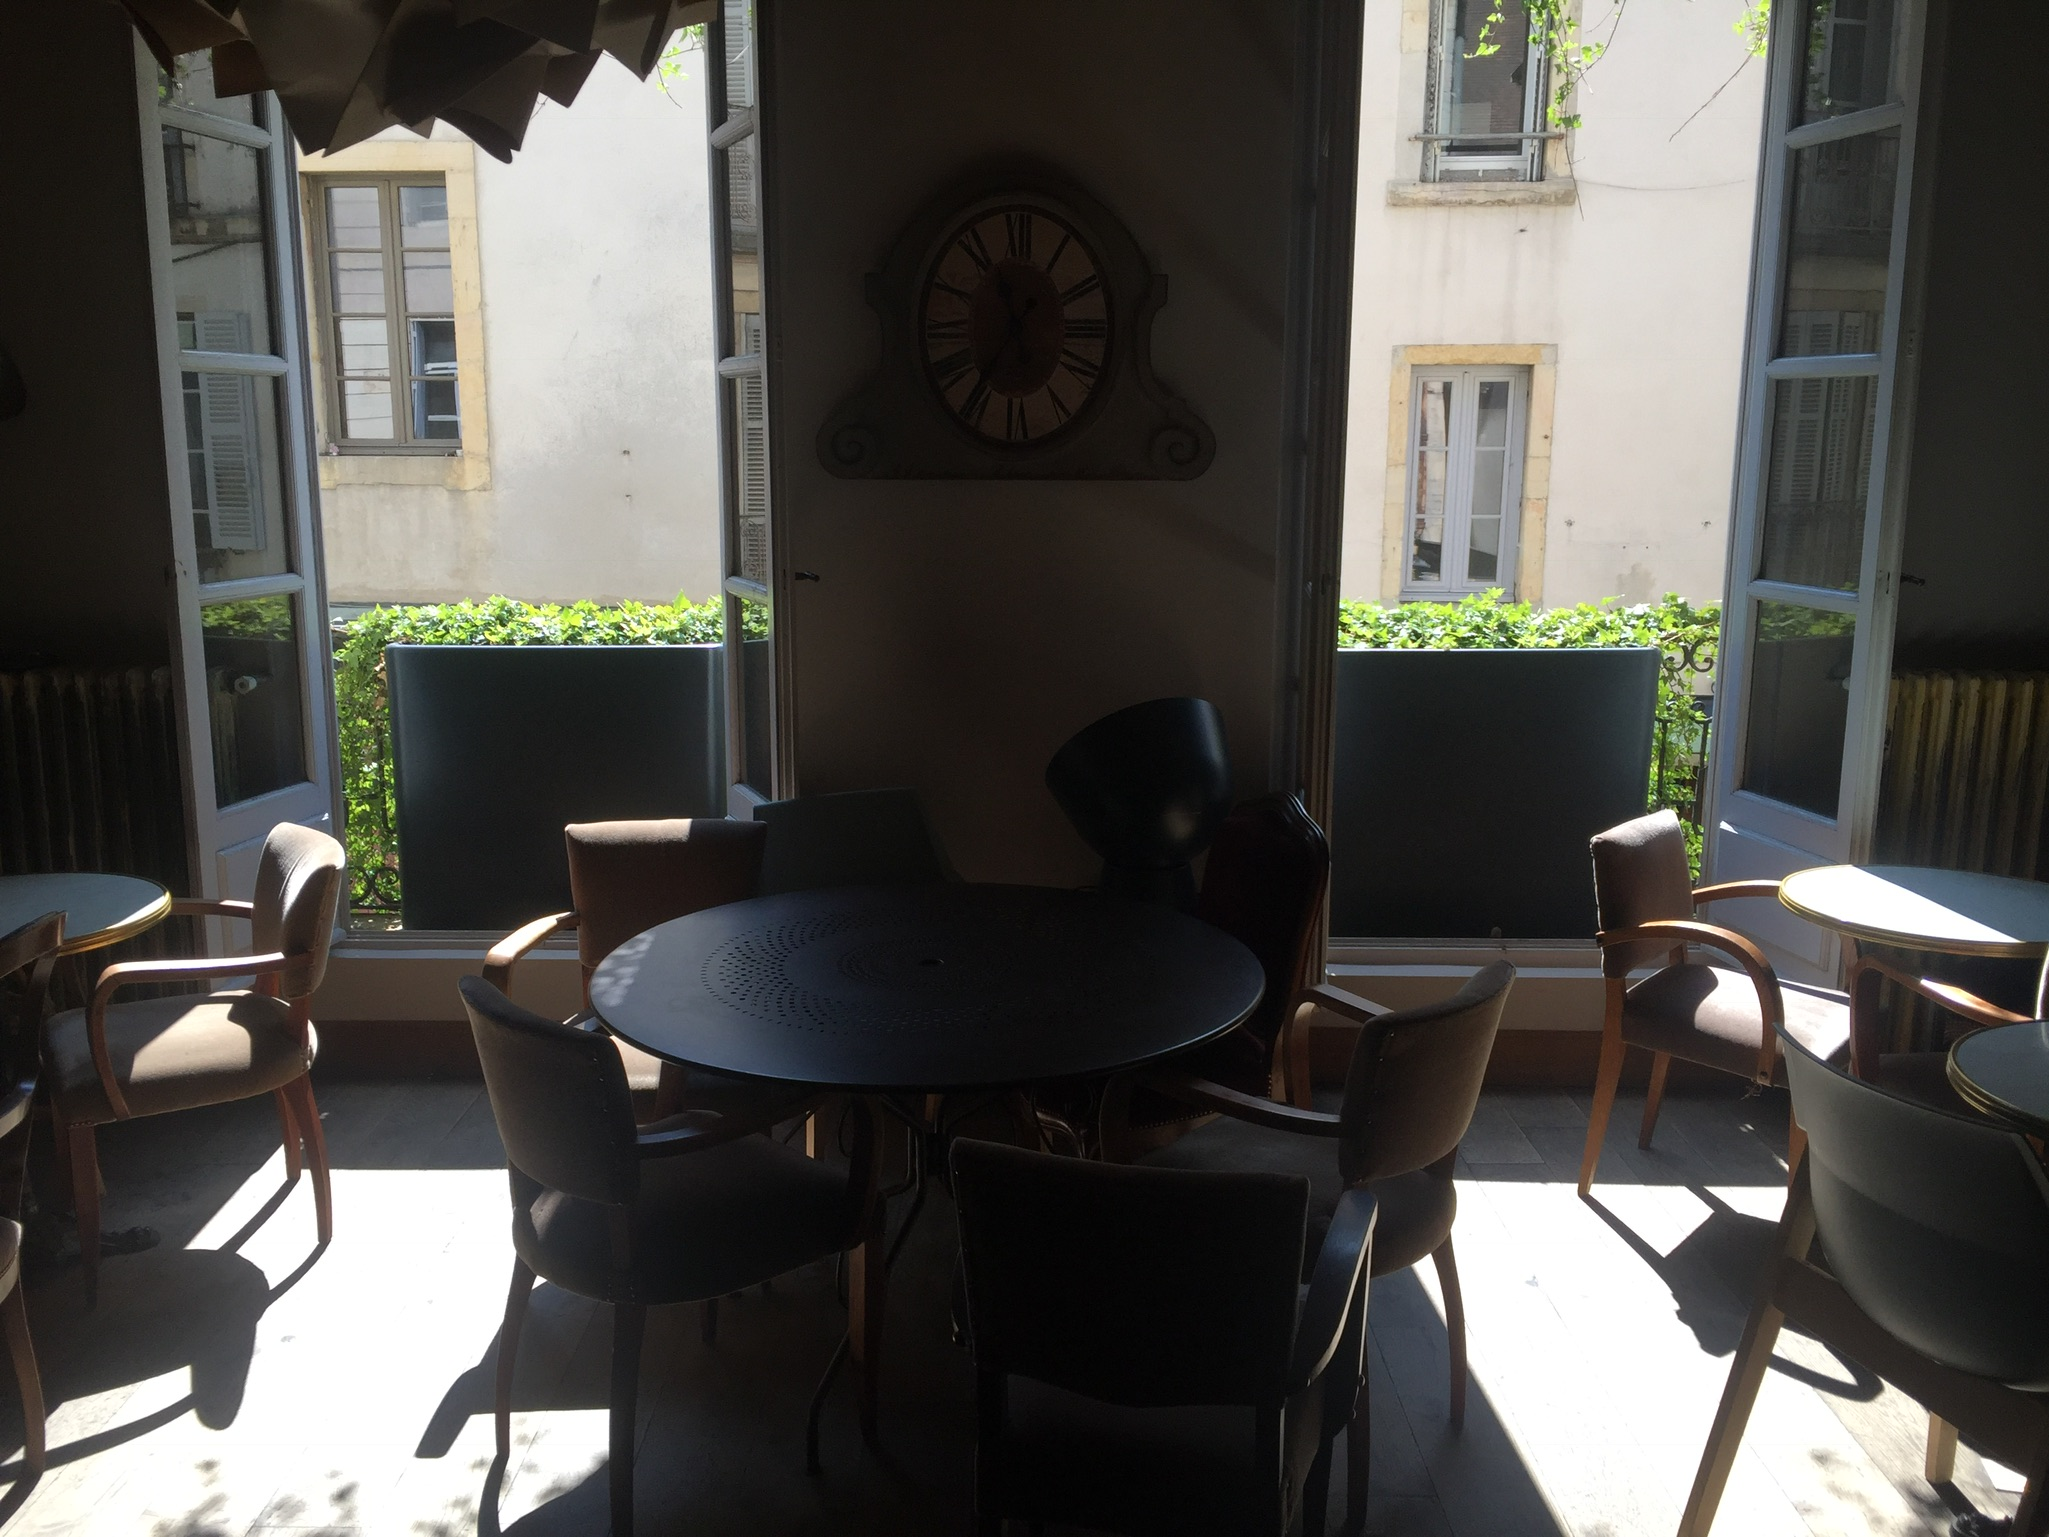 The only picture of the café in Dijon that I took!